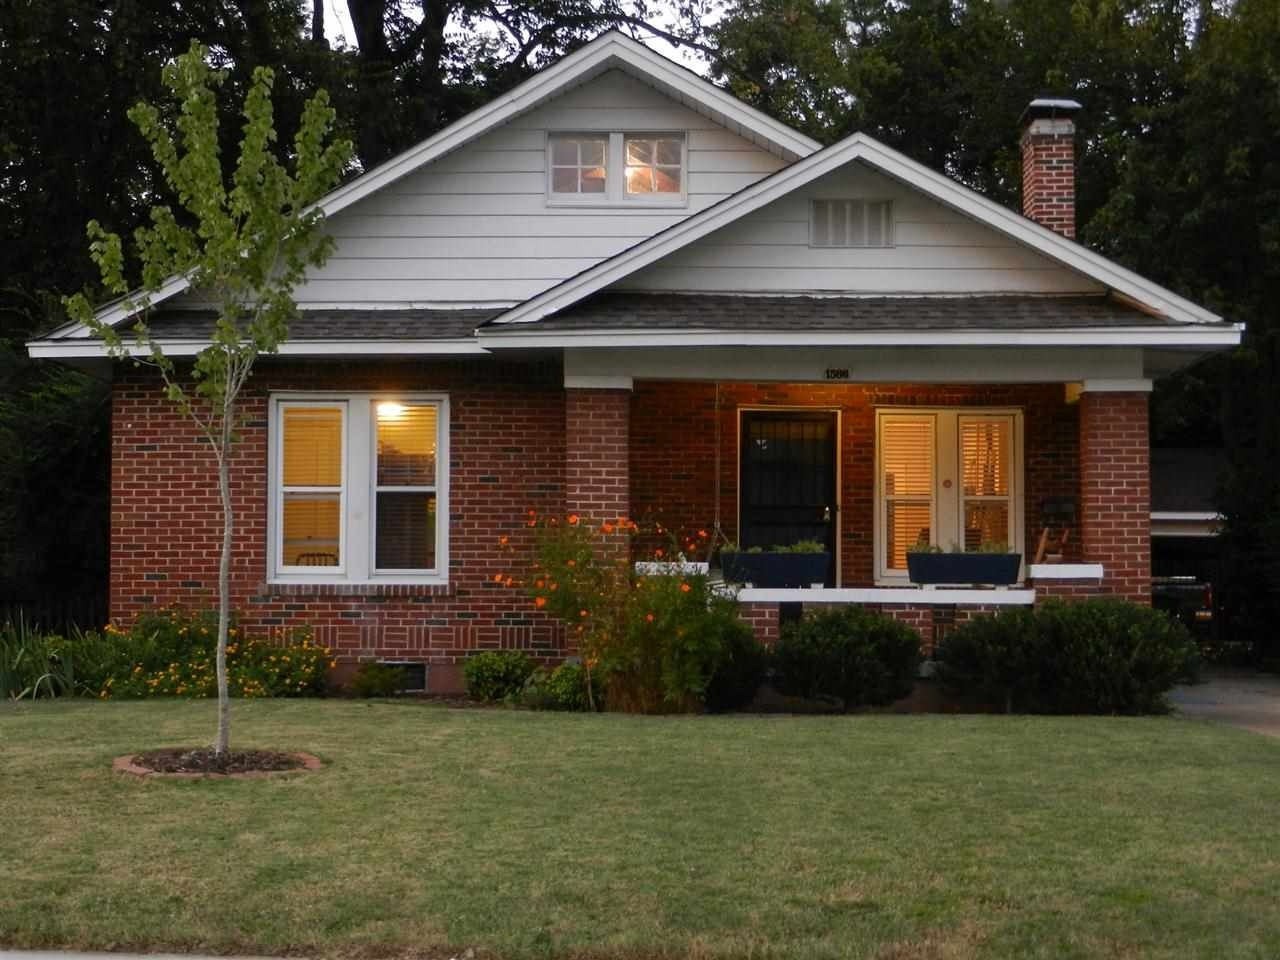 Memphis  TN. Homes on the Market for  200 000   Zillow Porchlight